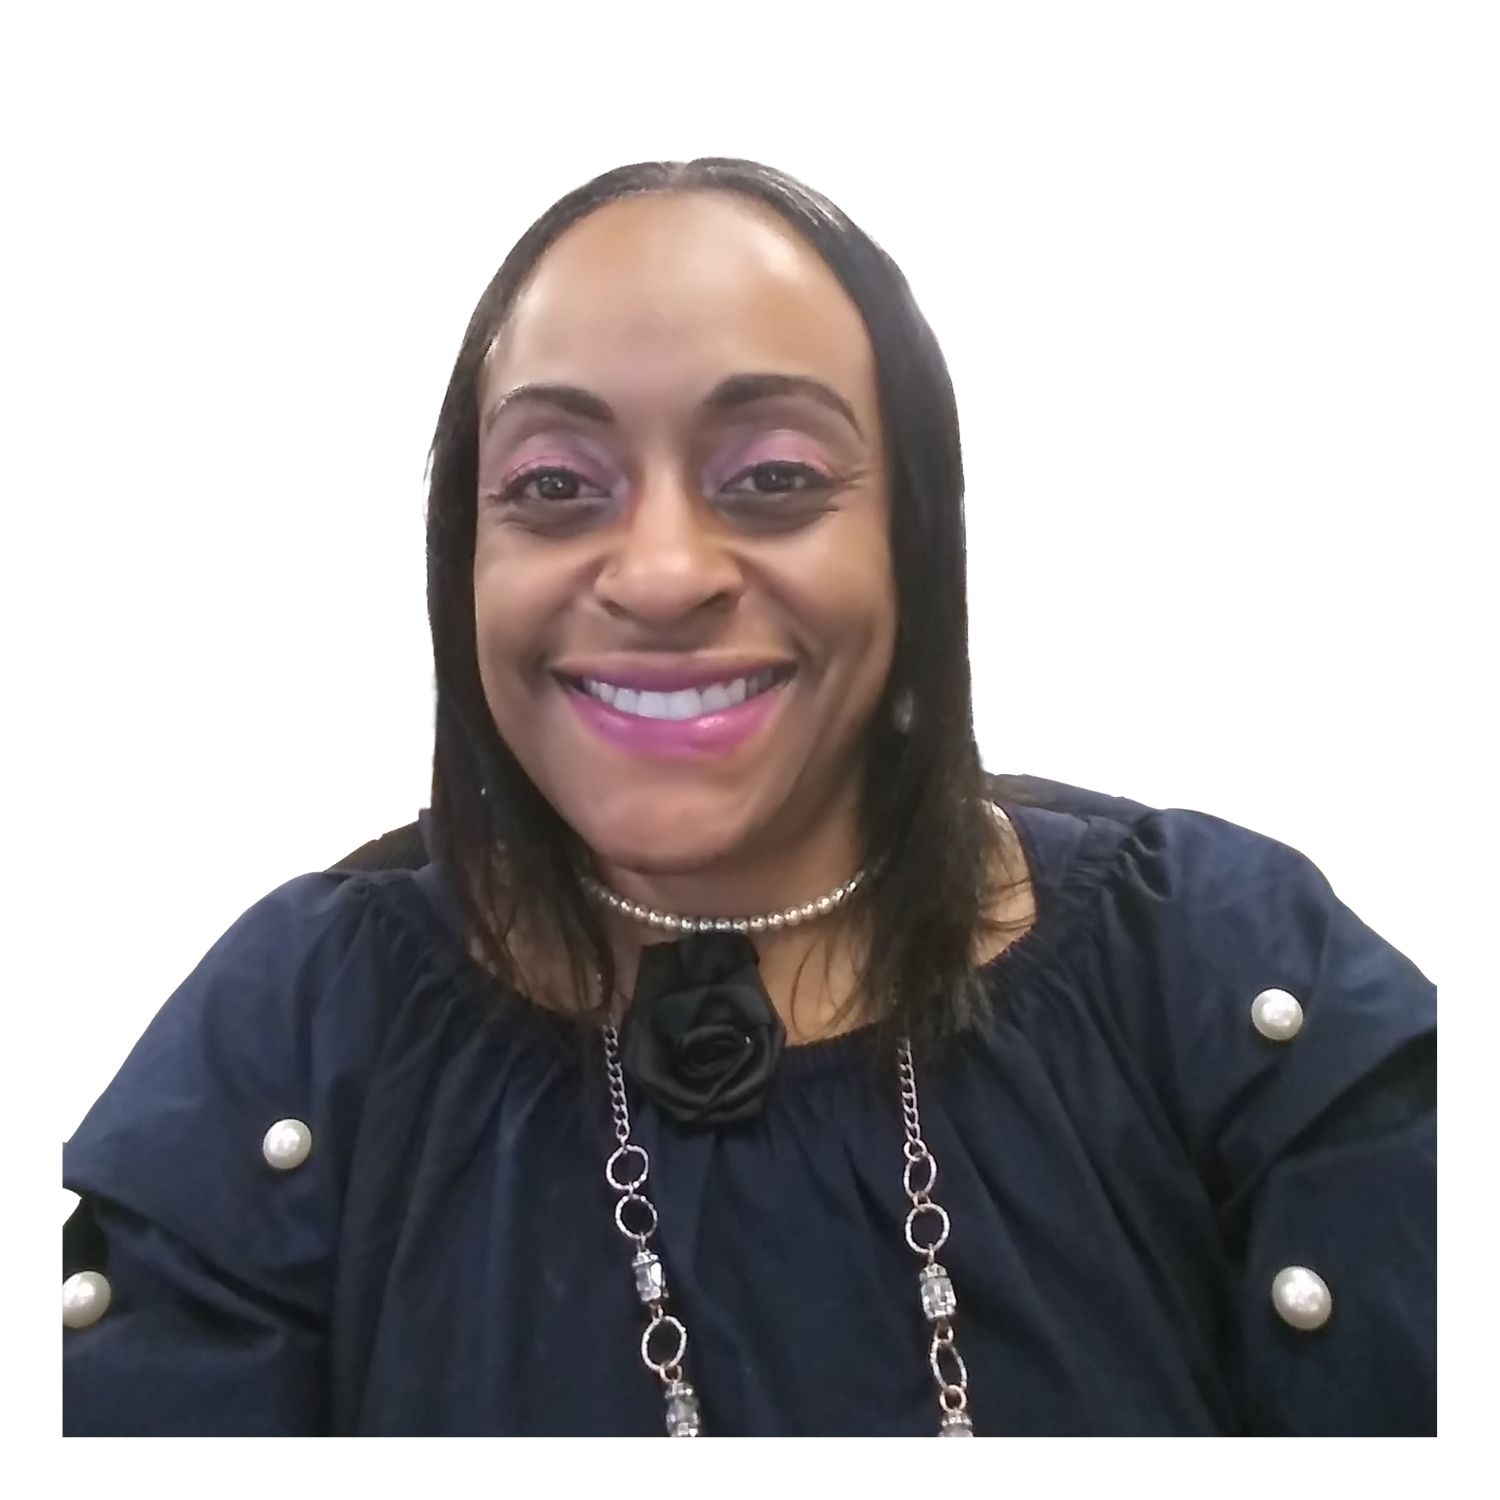 Twanda's passion for helping abused women and children over 10 years ago. She managed to escape her 12-year abusive marriage with her 2 kids over 25 years ago. Since she has been determined to assist other individuals throughout the city of Indianapolis by encouraging and uplifting these individuals. She now gives support group meetings online and gives away clothing and personal items. She also helps clients get placement and sometimes financial assistance. Her ultimate goal is to get a building to house the victims in for emergency purposes. She now has her nonprofit which has its 501c3.